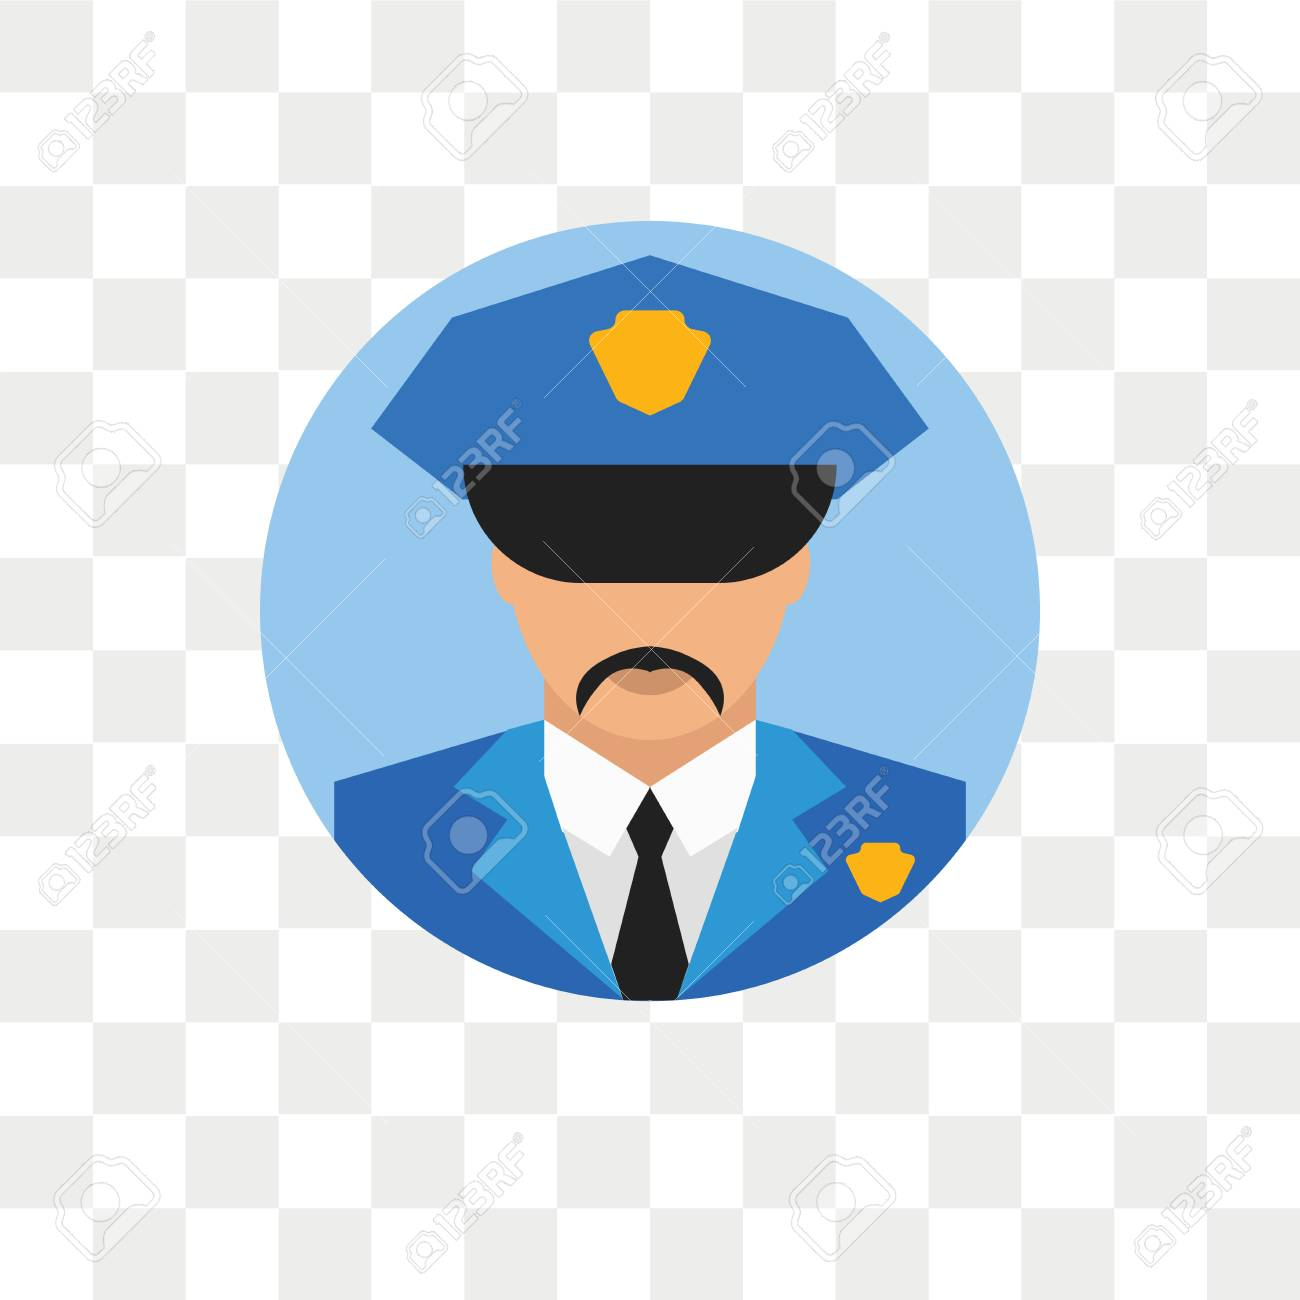 Policeman Vector Icon Isolated On Transparent Background 1300x1300